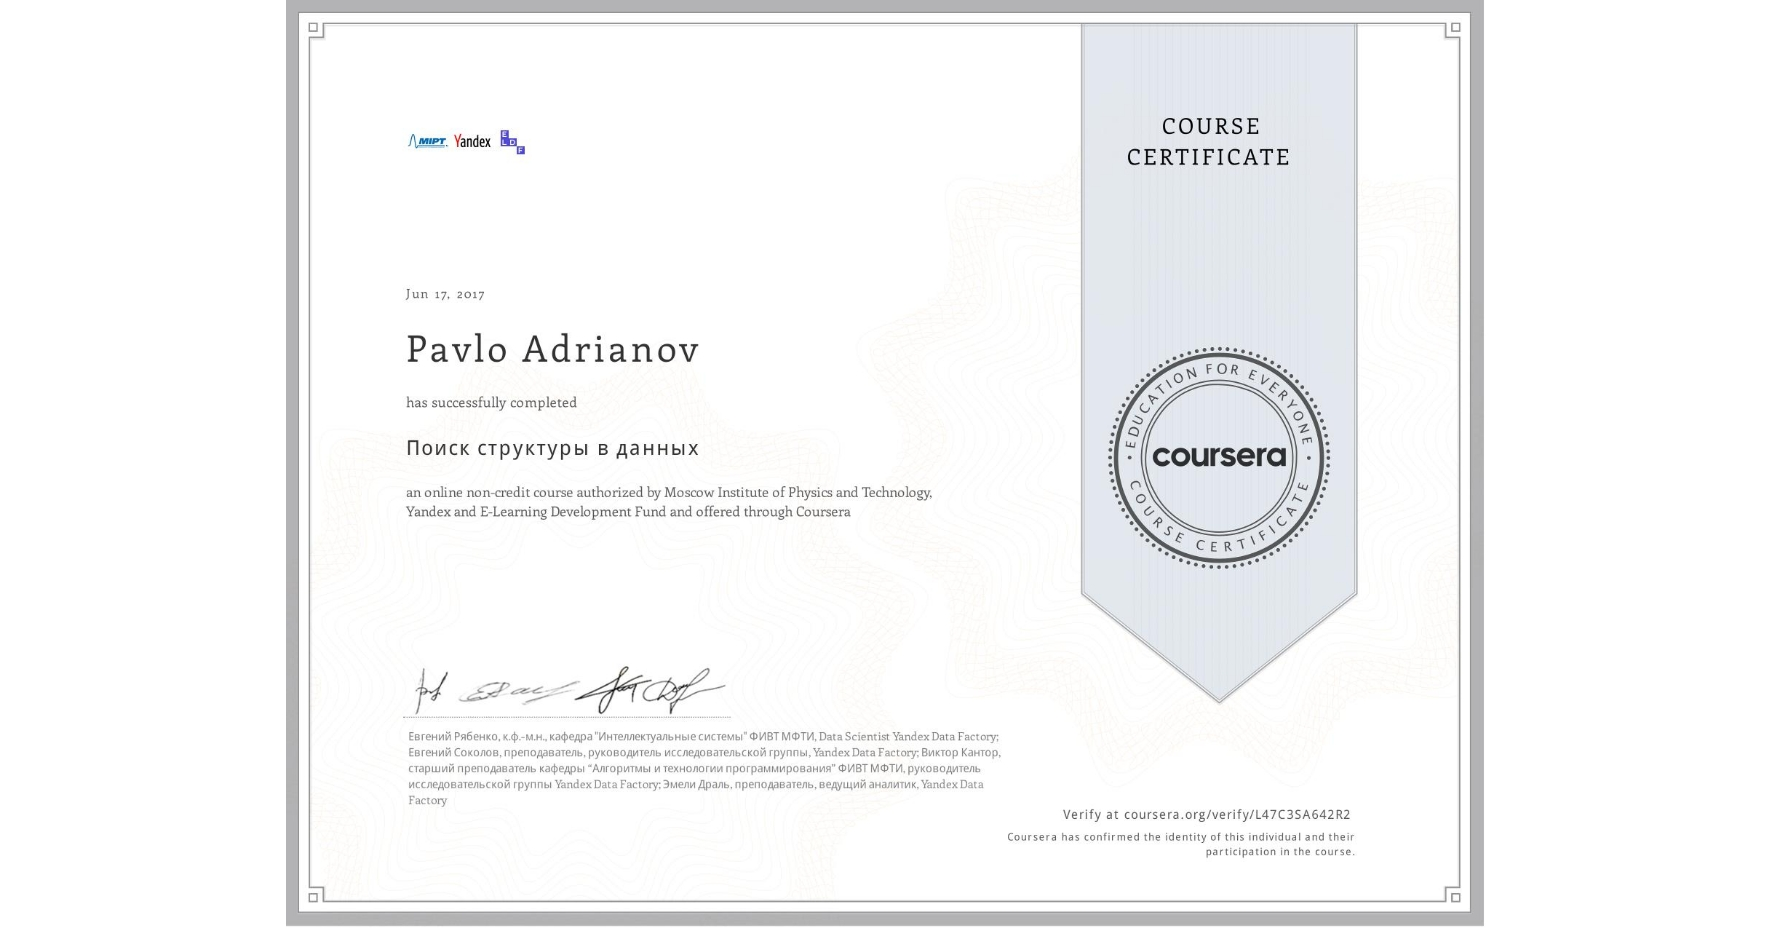 View certificate for Pavlo Adrianov, Поиск структуры в данных, an online non-credit course authorized by Moscow Institute of Physics and Technology, Yandex & E-Learning Development Fund and offered through Coursera